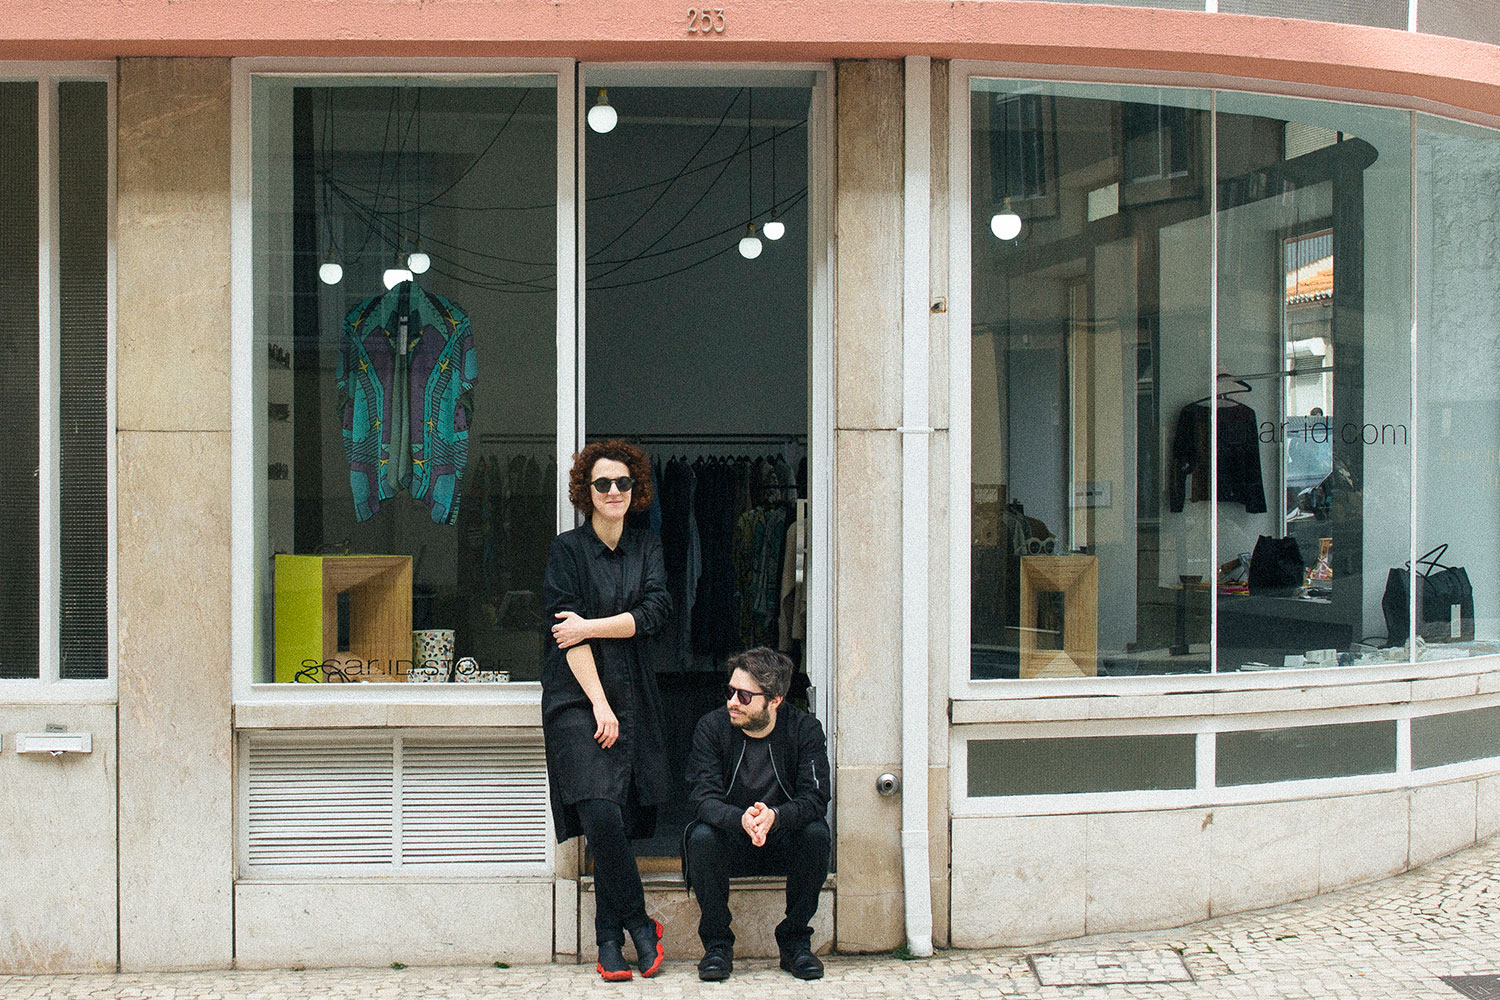 Welcome to Scar-id - Sílvia and André in front of the store